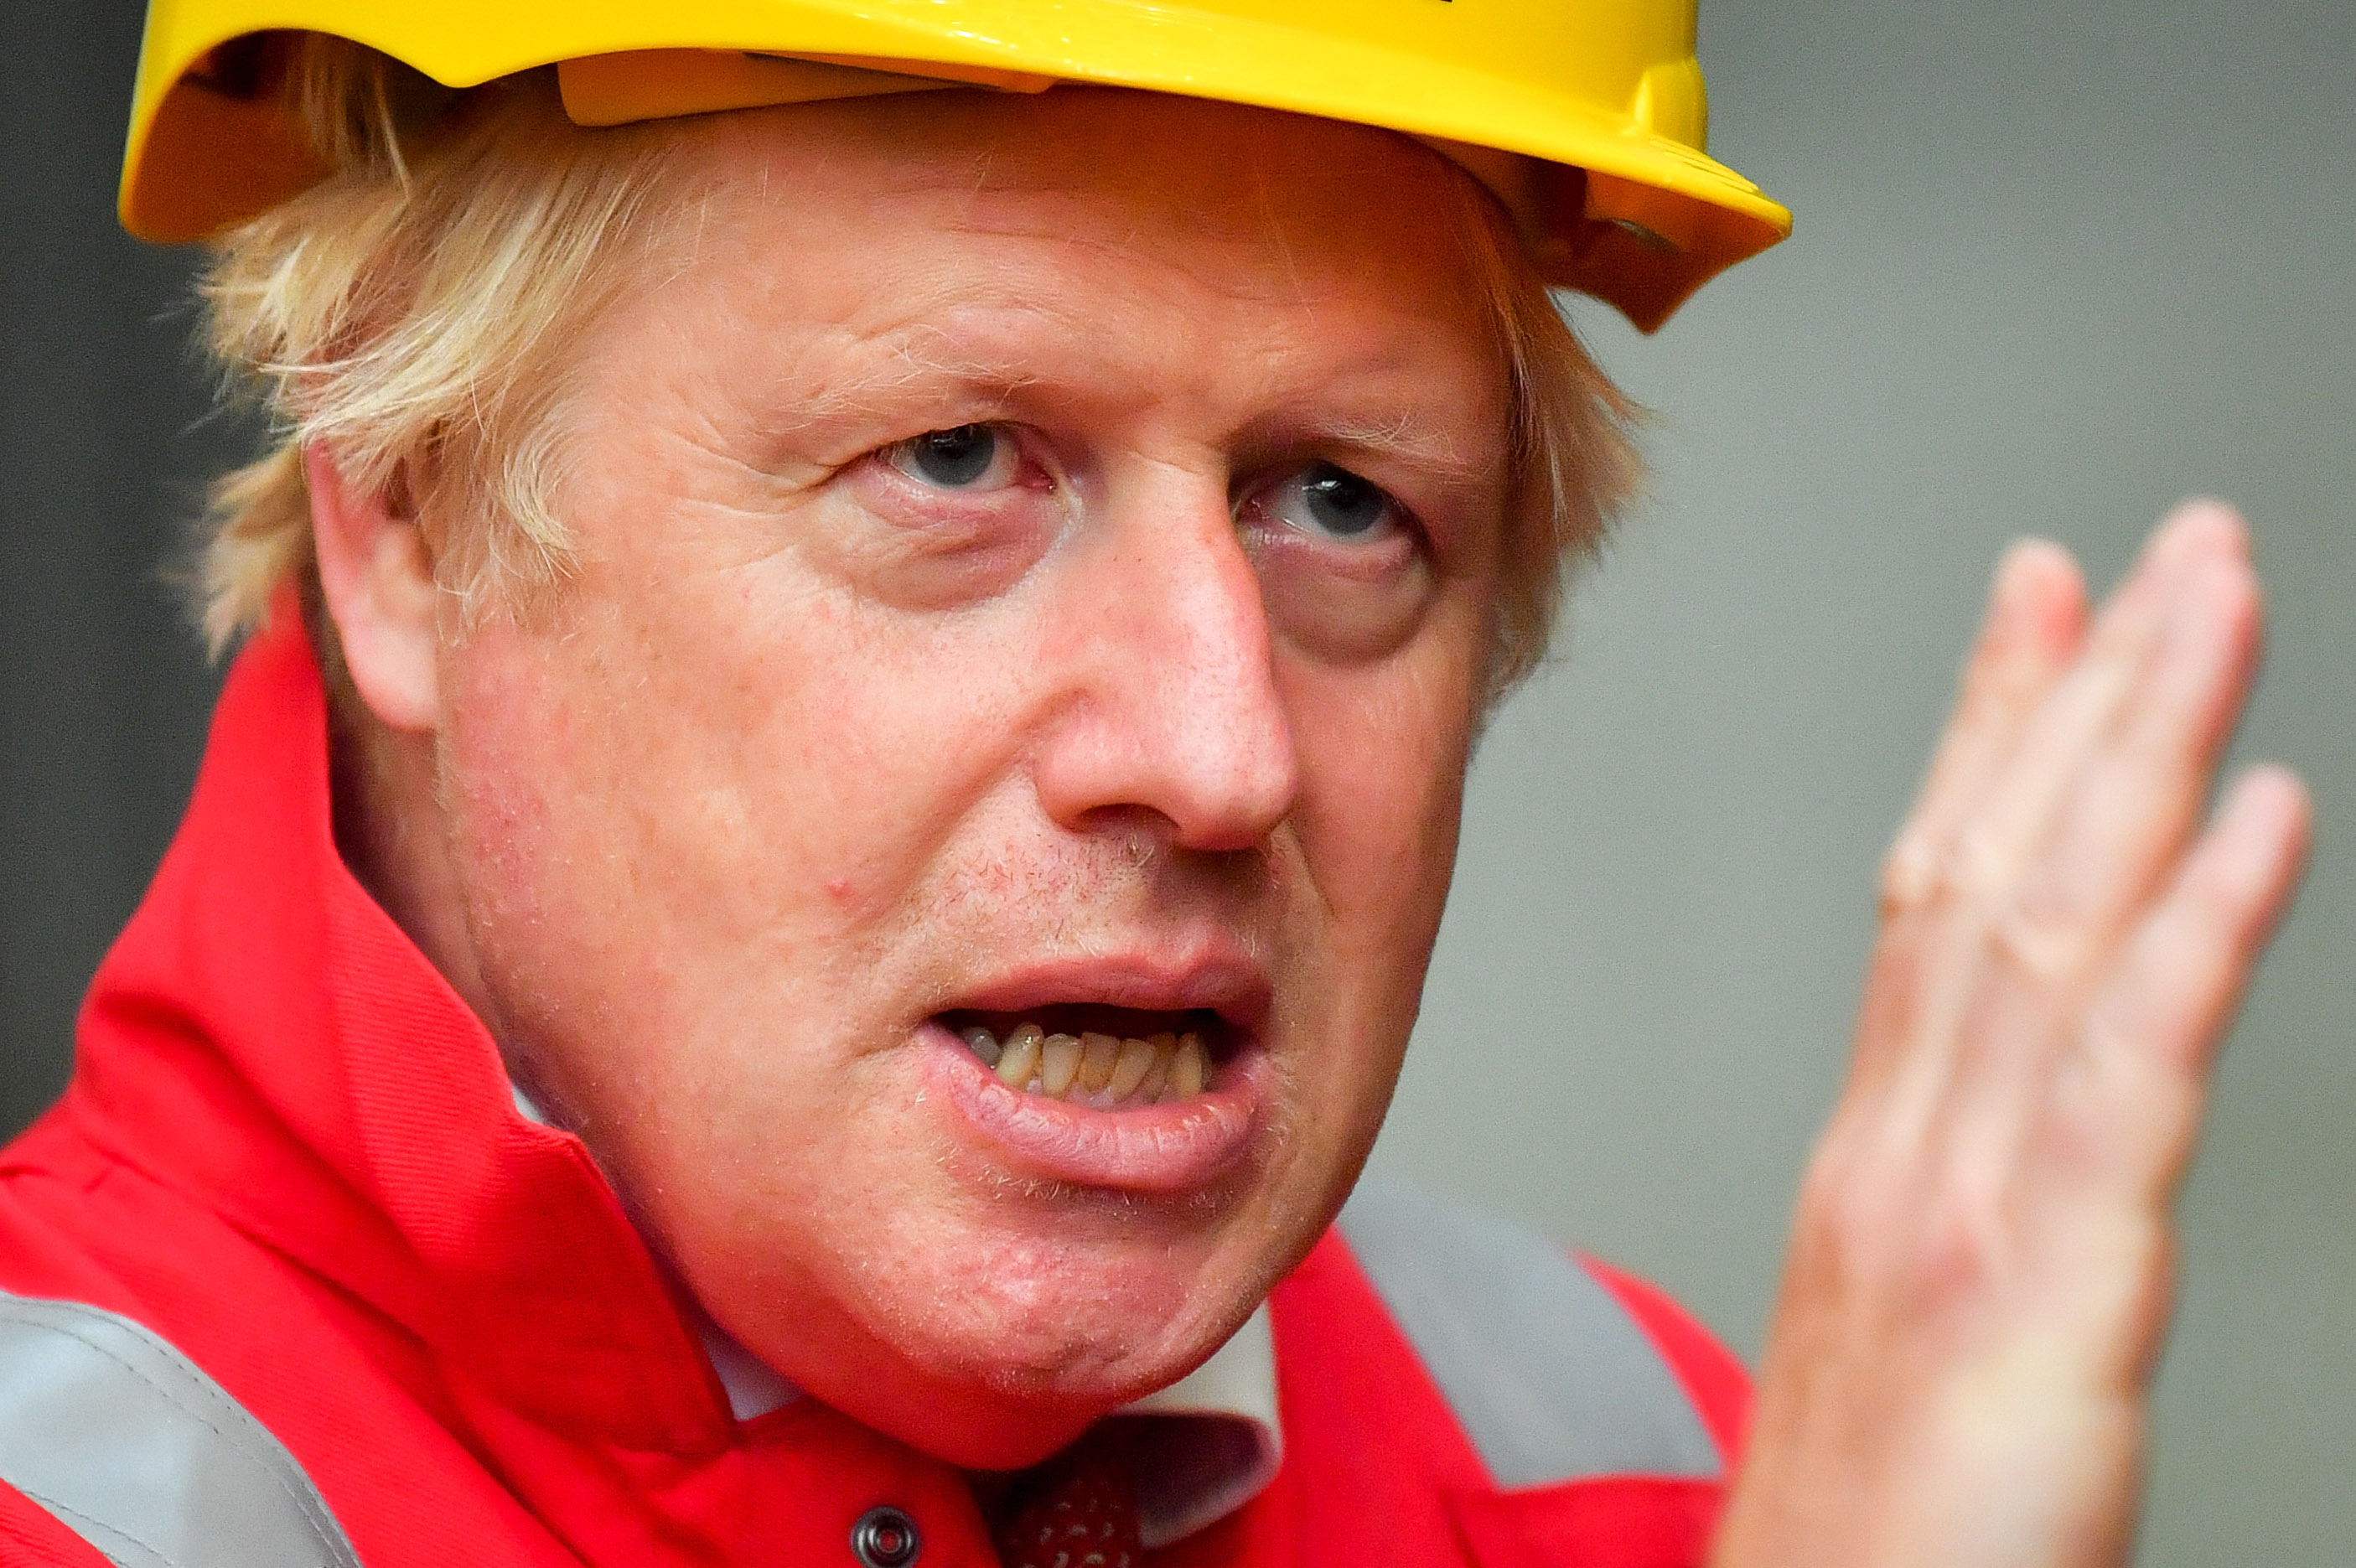 Britain's Prime Minister Boris Johnson gestures during his visit to Appledore Shipyard in south west England on August 25, 2020, as the historic shipyard announced it's re-opening having being bought by InfraStrata in a £7 million deal. (Photo by Ben Birchall / POOL / AFP) (Photo by BEN BIRCHALL/POOL/AFP via Getty Images)